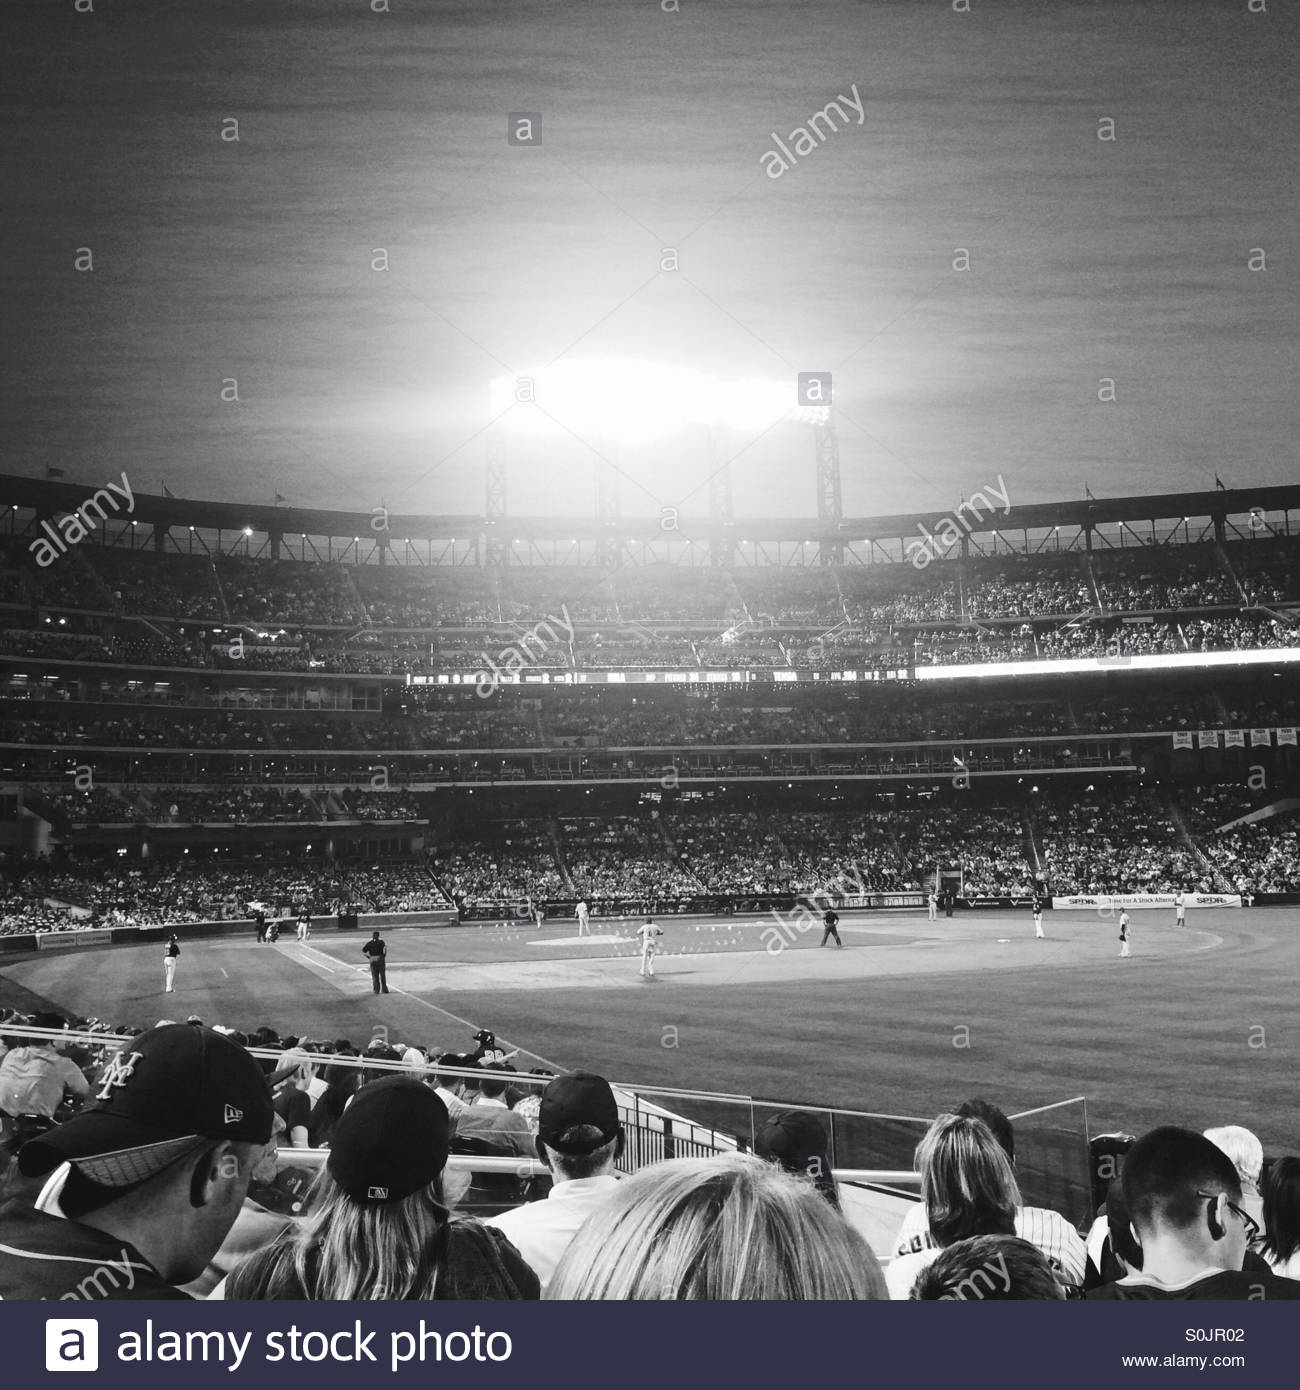 mets-night-game-at-citi-foeld-with-brigh